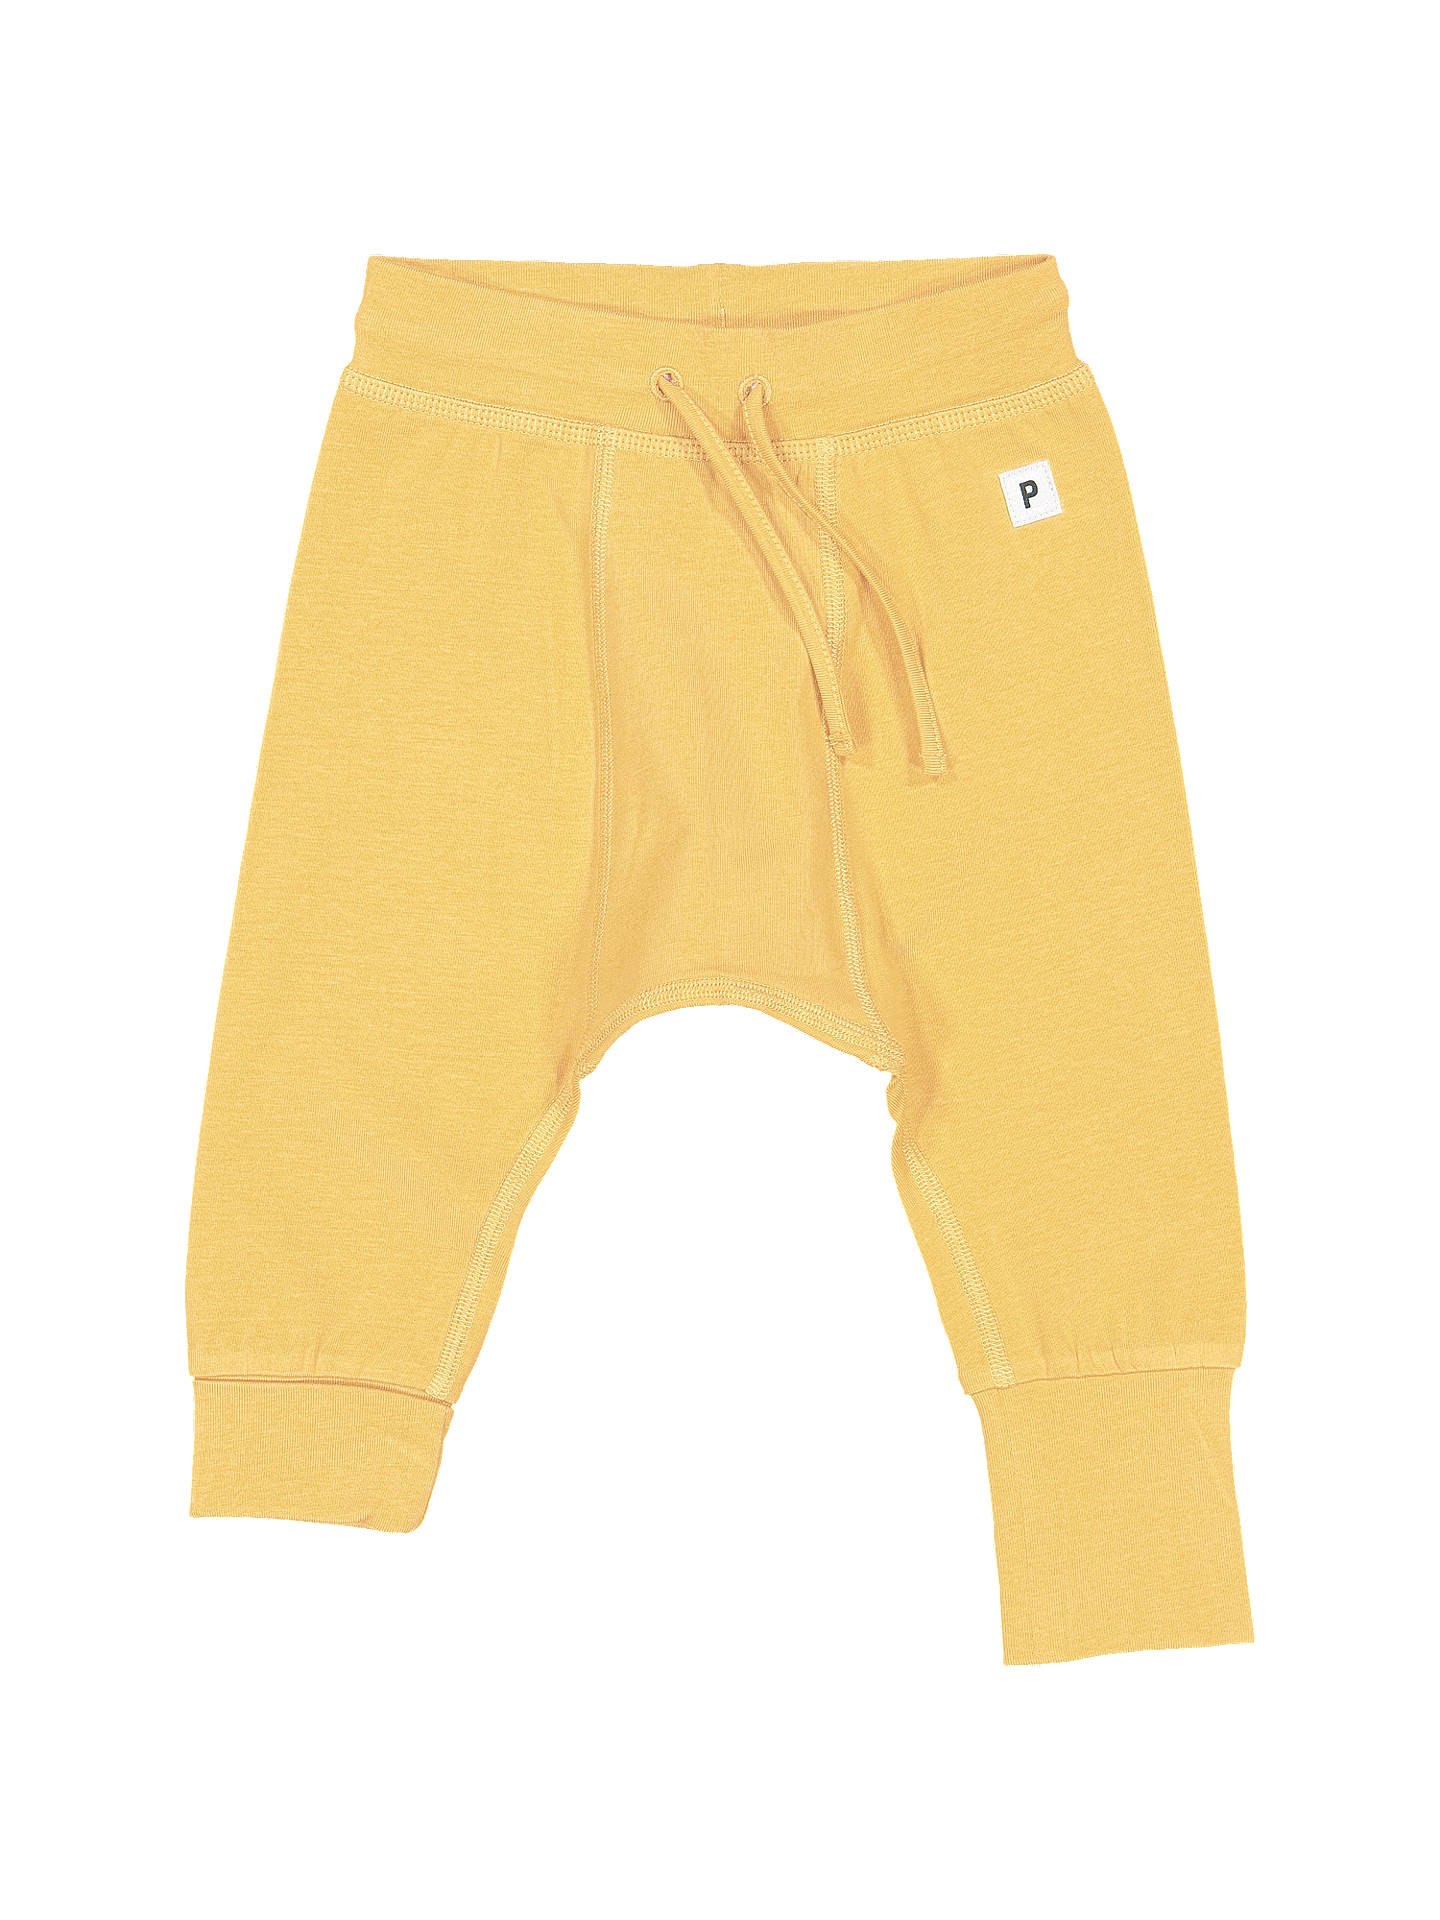 BuyPolarn O. Pyret Baby Trousers, Yellow, 0-1 months Online at johnlewis.com